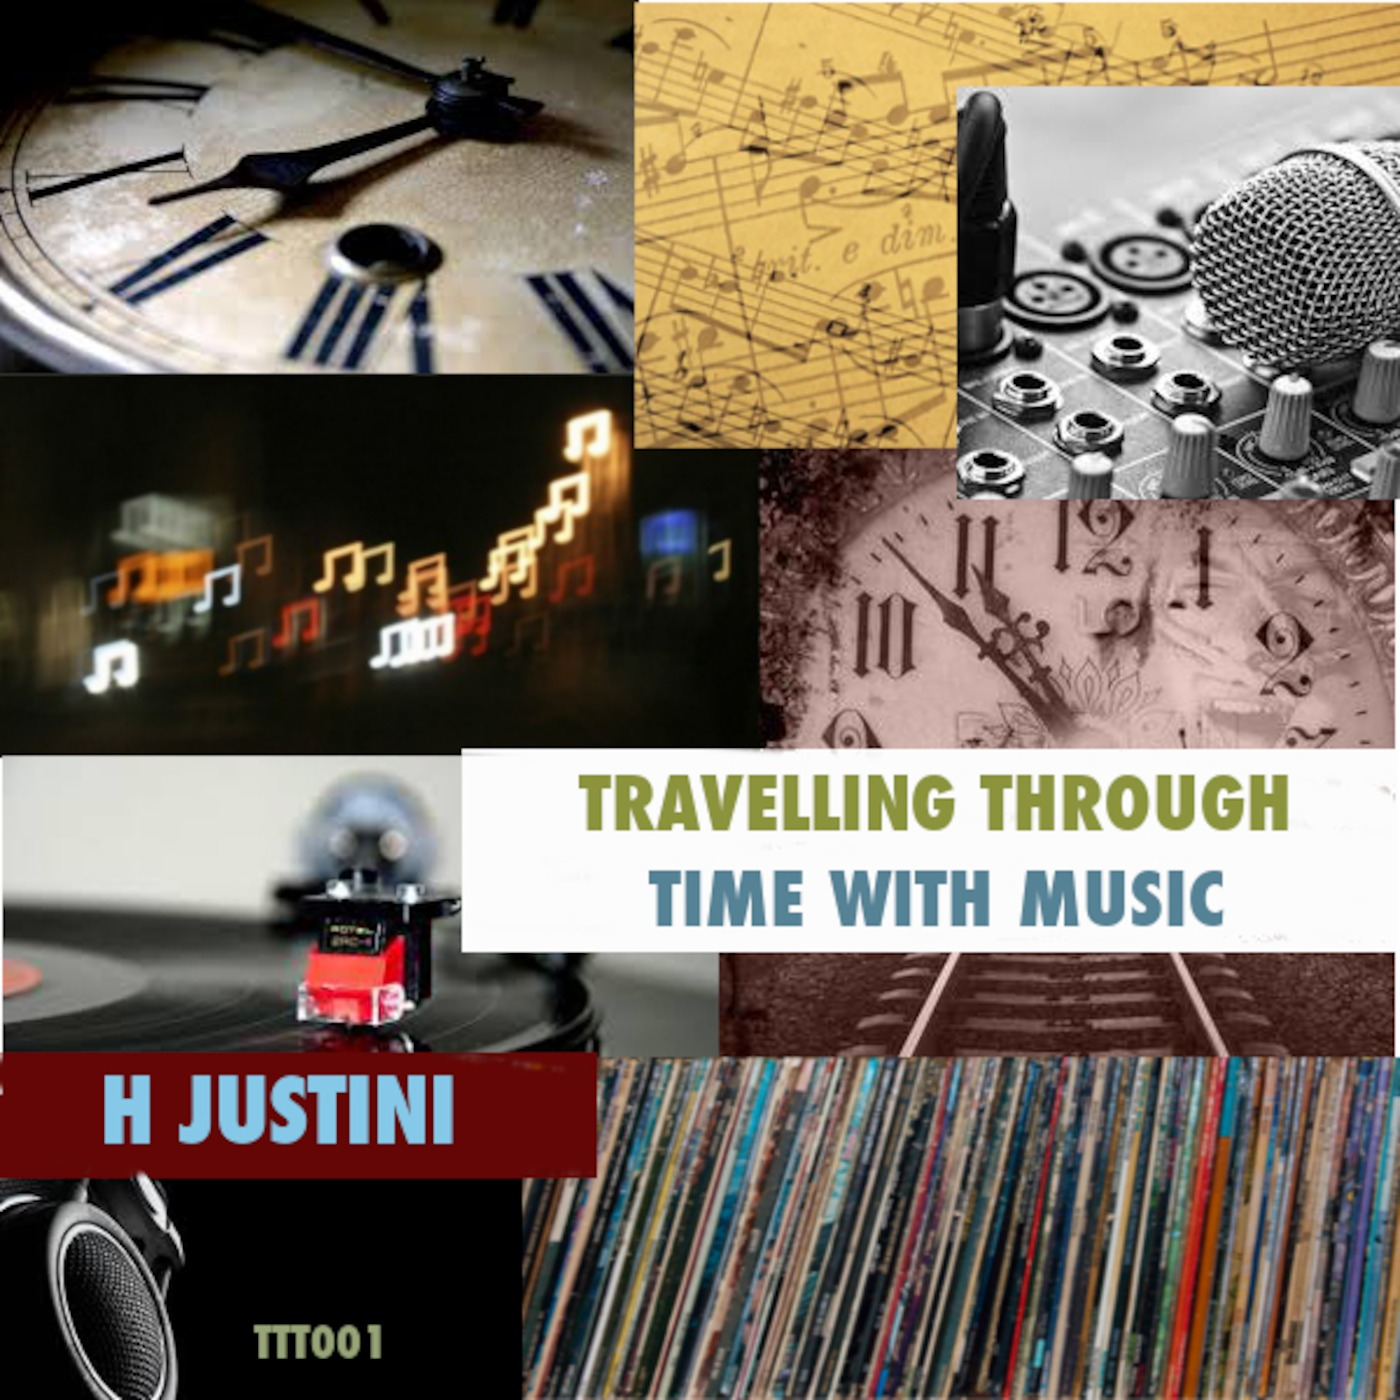 Travelling Through Time With Music by H Justini